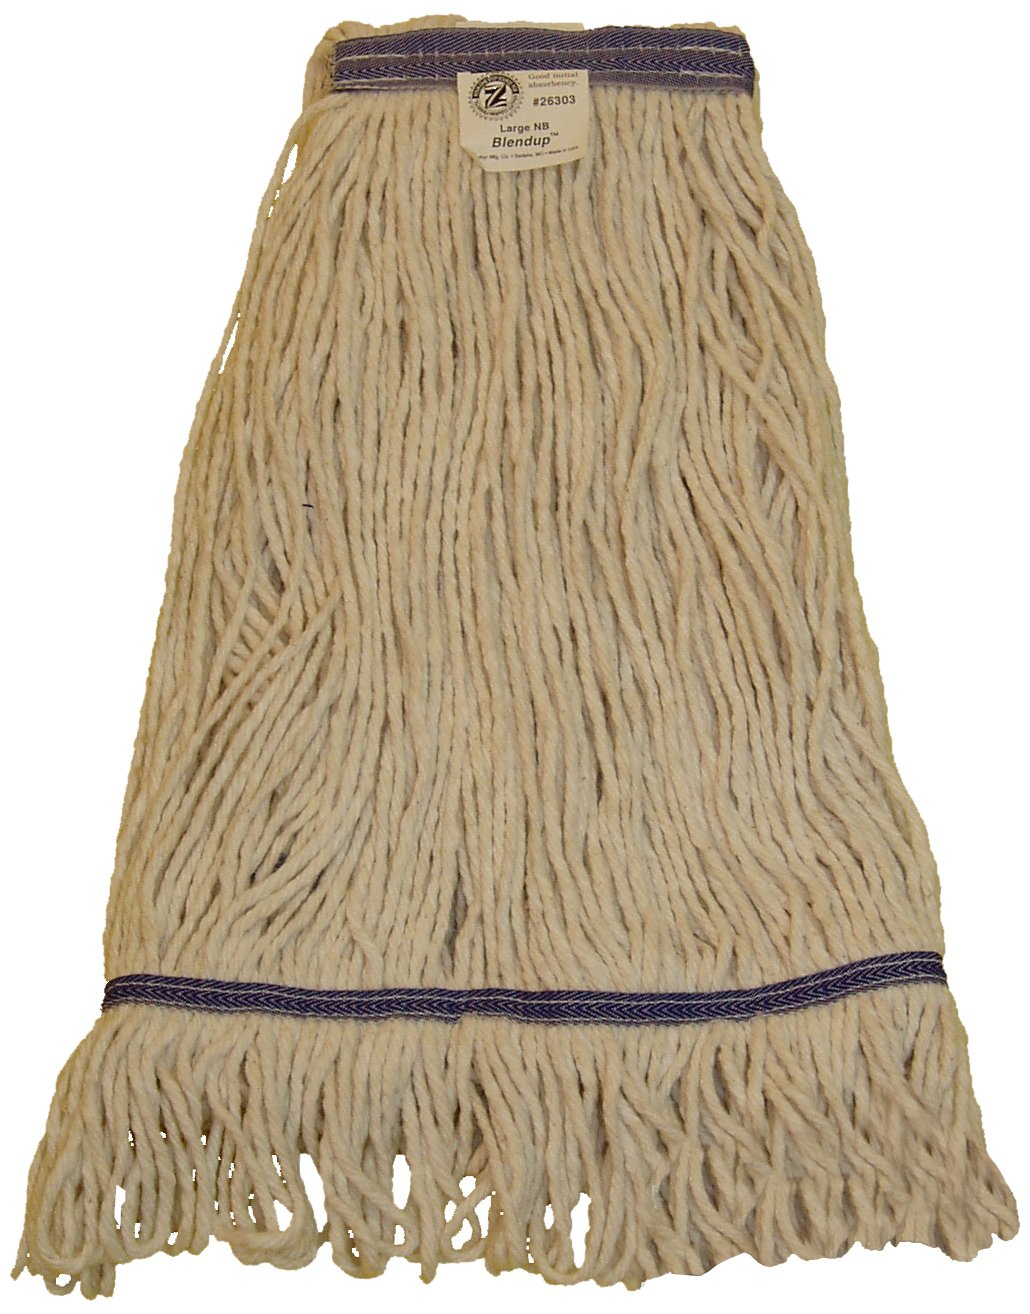 Zephyr 26303 Blendup 4-ply Blended Natural and Synthetic Fibers Large Loop Mop Head with 1-1/4'' Narrow Headbands (Pack of 12)